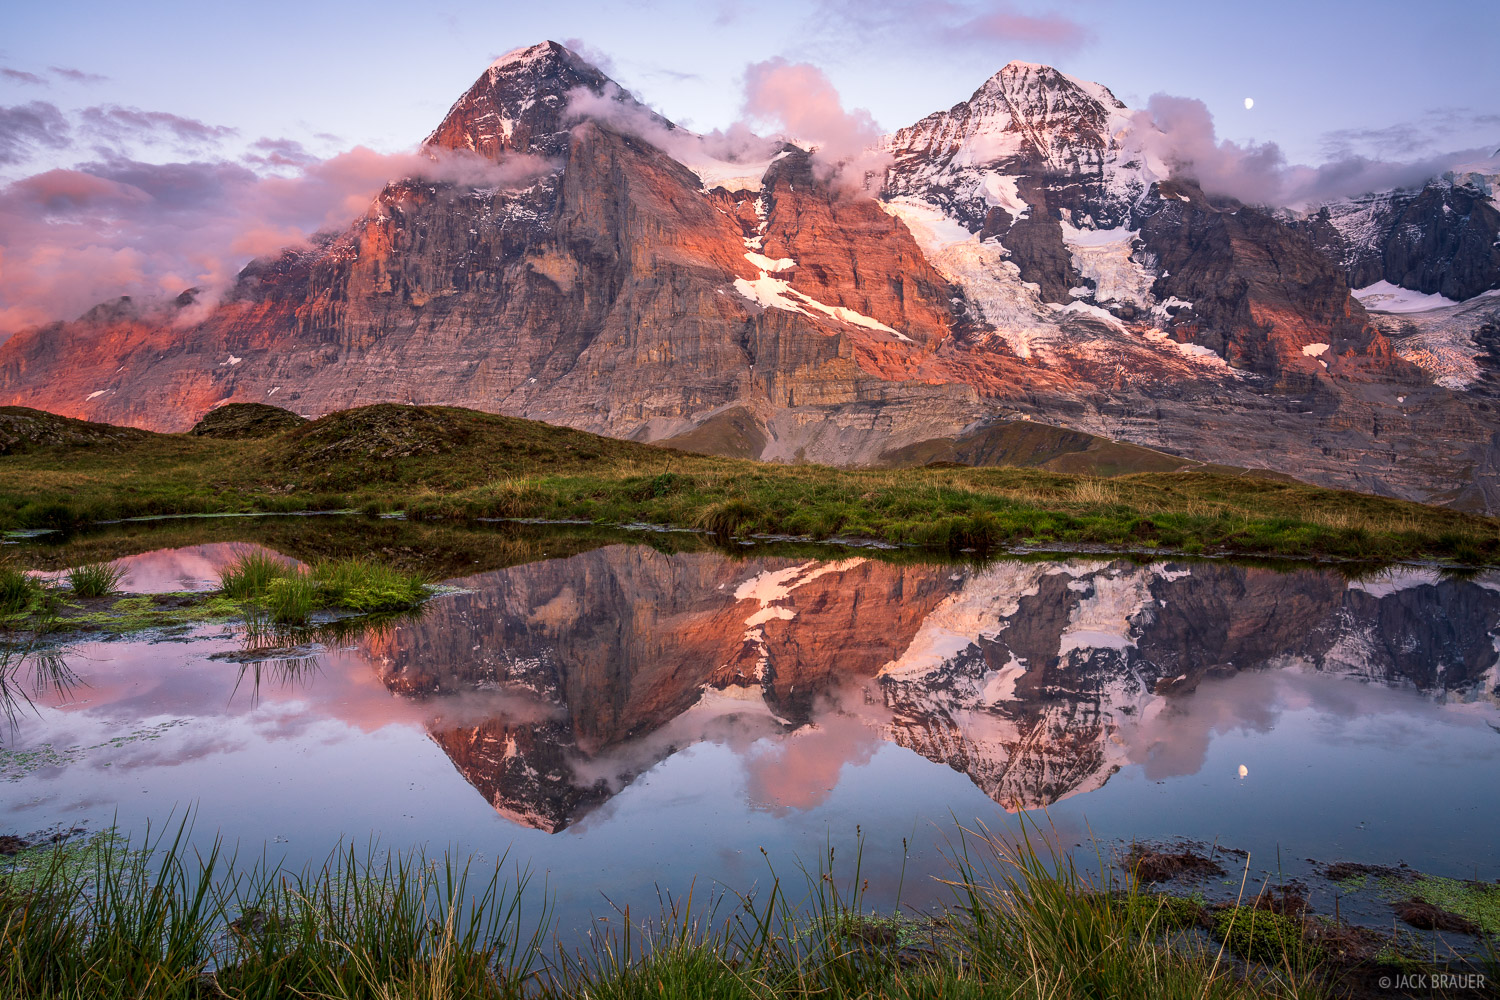 Bernese Alps, Eiger, Kleine Scheidegg, Mönch, Switzerland, reflection, Bernese Oberland, Alps, photo